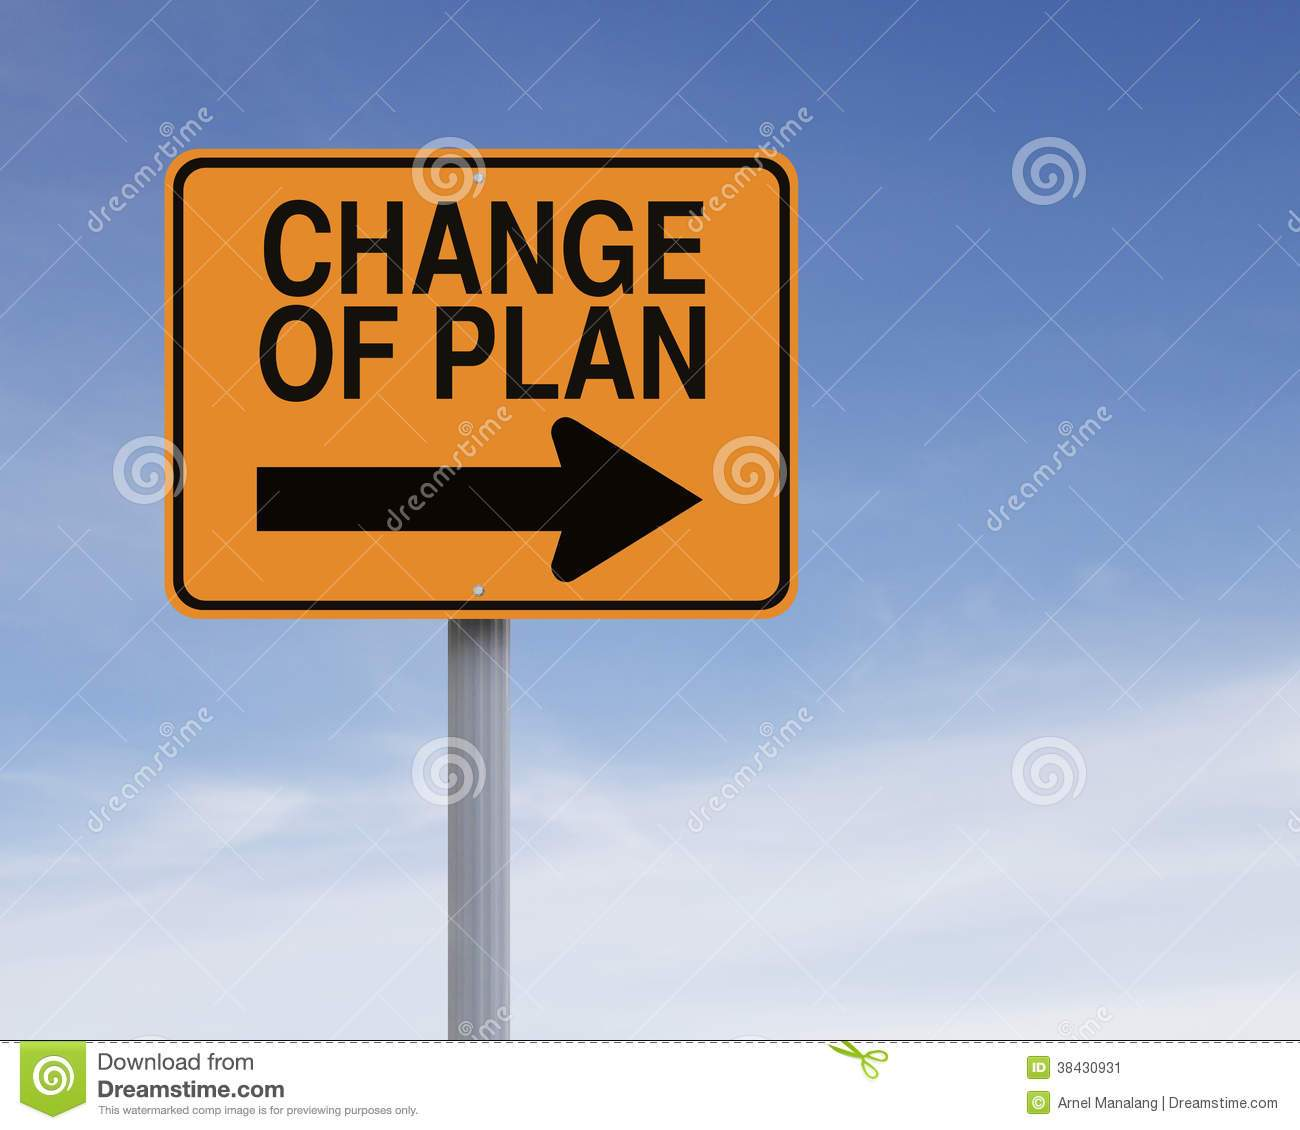 Change of plans clipart clipart black and white Change of plans clipart 2 » Clipart Portal clipart black and white